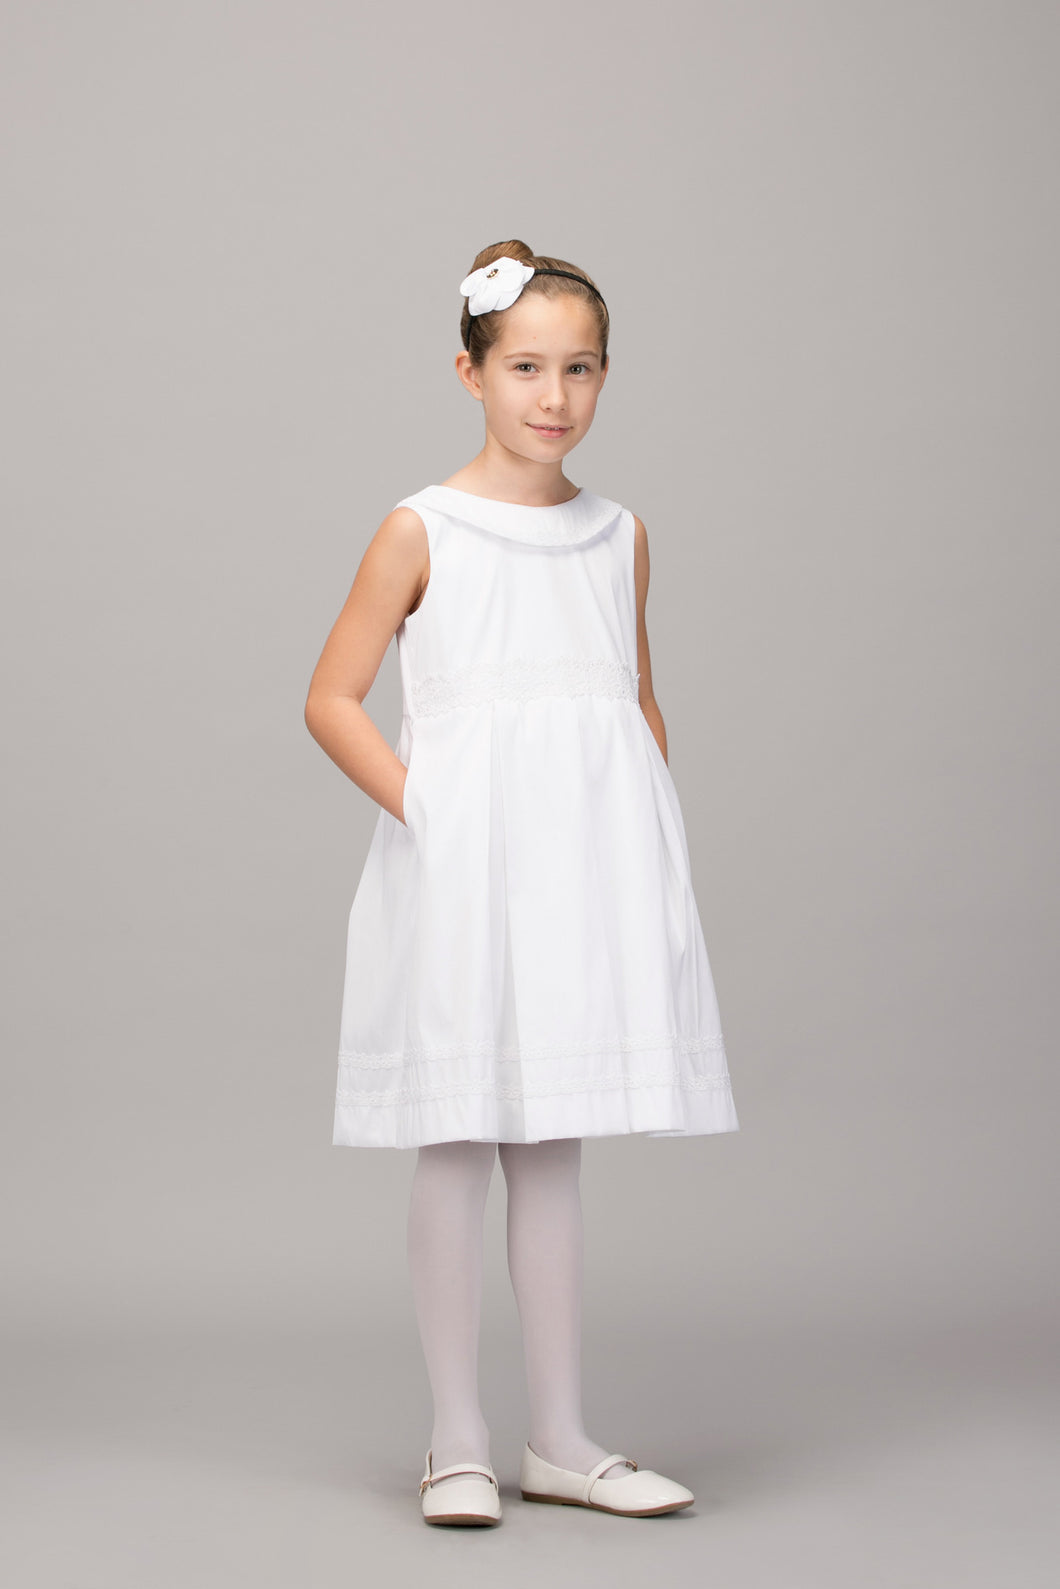 WHITE PLEATED DRESS WITH WRAP AROUND LACED COLLAR - SLEEVELESS